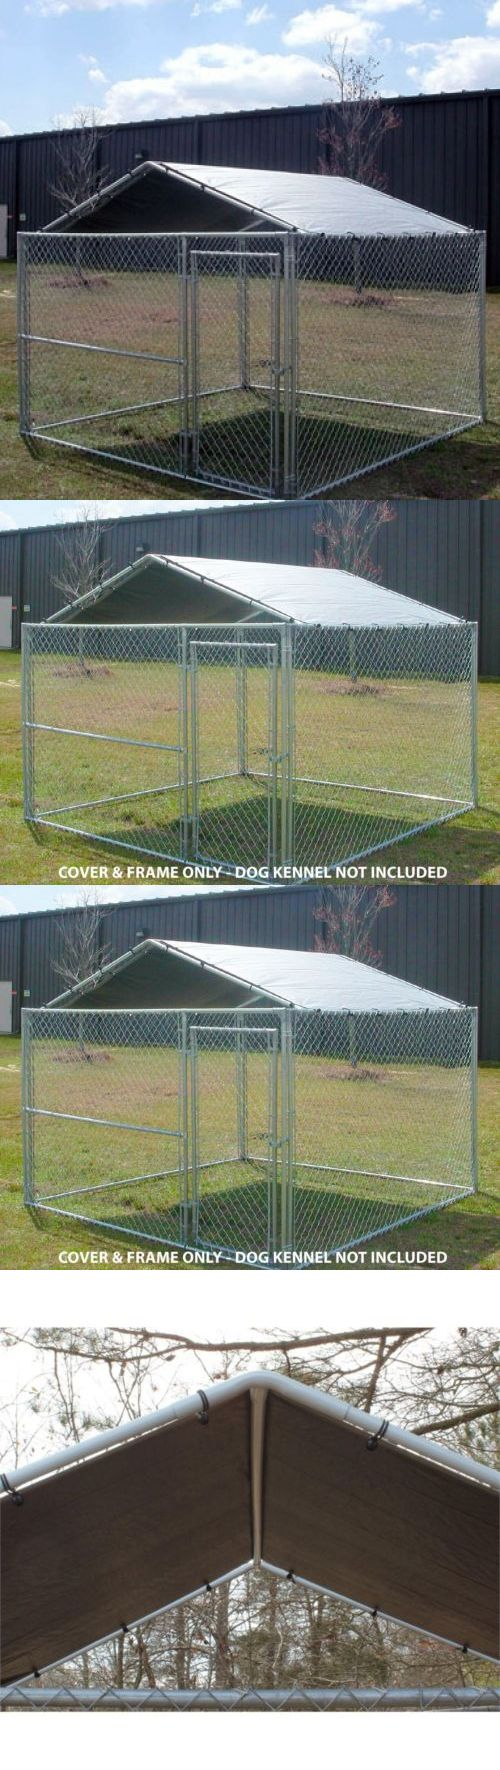 Fences and Exercise Pens 20748: Dog Kennel Cover 10 X 10 House Canopy Outdoor Run Pet Shelter Shade Weather -> BUY IT NOW ONLY: $90.25 on eBay!